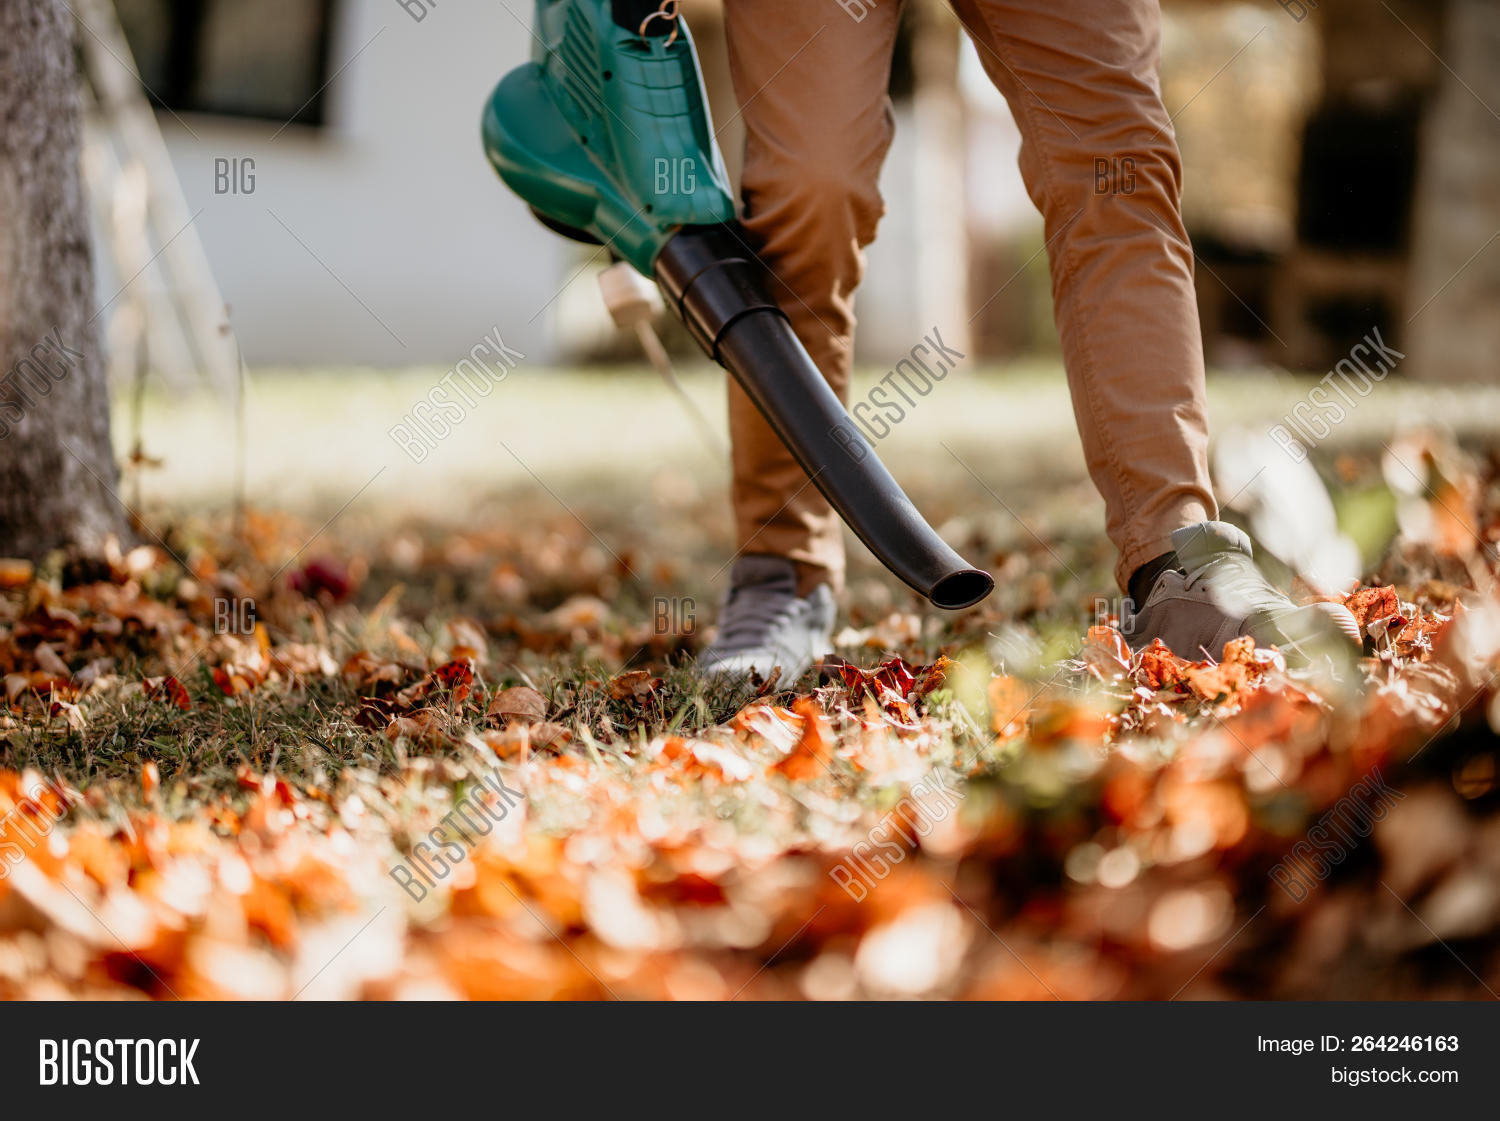 activity,agriculture,autumn,autumnal,back,blower,blowing,cleaner,cleaning,colourful,dust,duty,equipment,fall,flora,foliage,garden,gardener,gardening,happy,heavy,home,horticulture,industrial,industry,labor,landscaping,lawn,leaf,leaves,machine,man,mower,nature,outdoor,outside,patio,people,plants,professional,season,smiling,technology,tool,vacuum,work,worker,working,yard